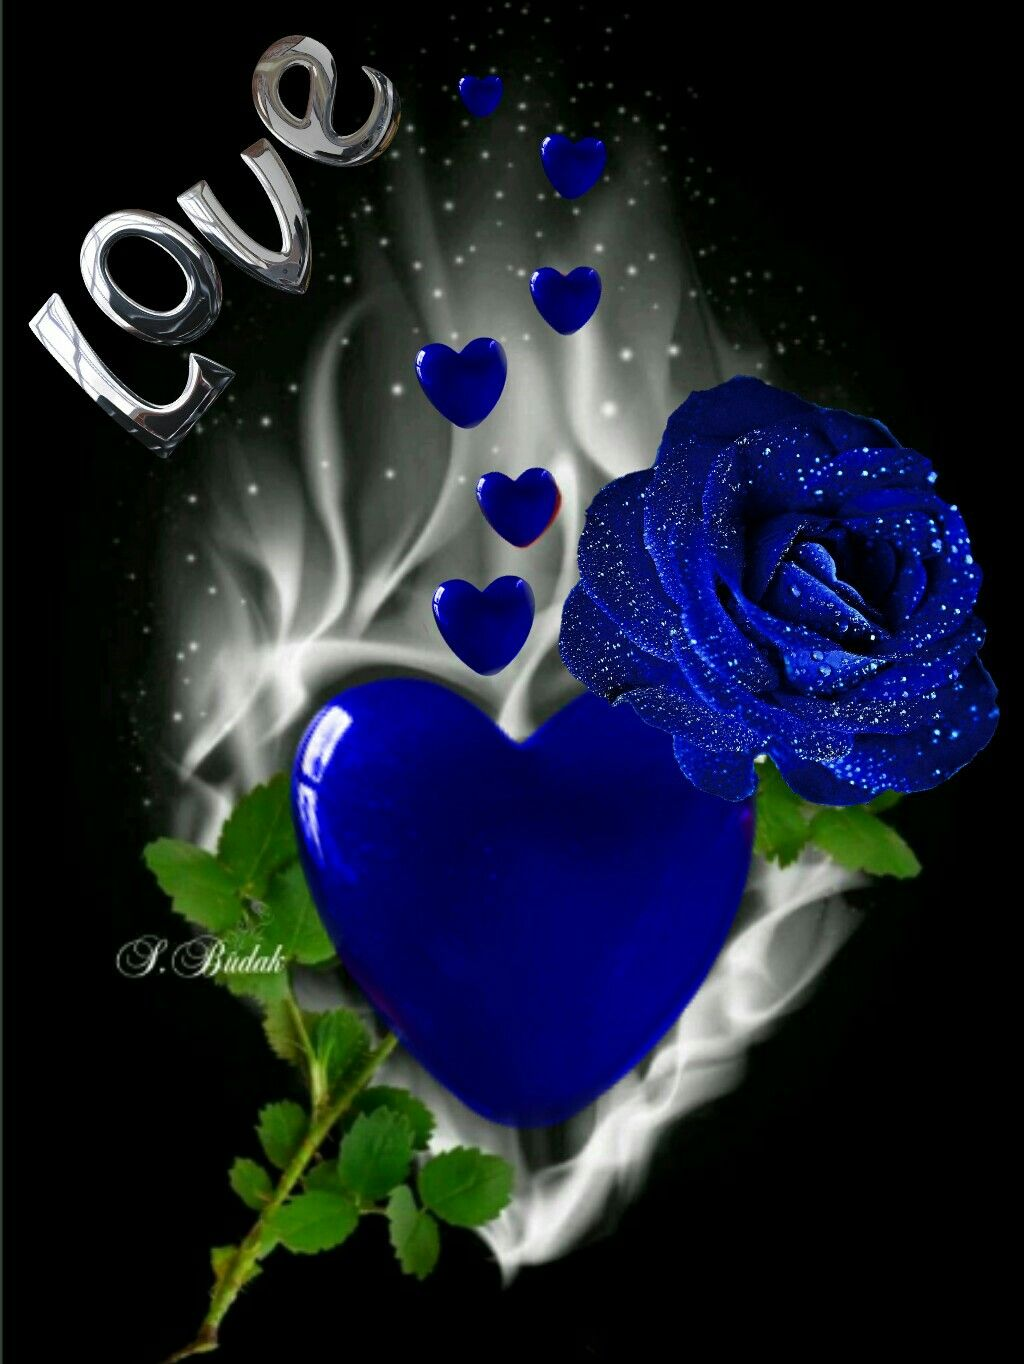 Pin By Memorable Moments On I Love You Jesus Flower Phone Wallpaper Blue Rose Tattoos Blue Roses Wallpaper